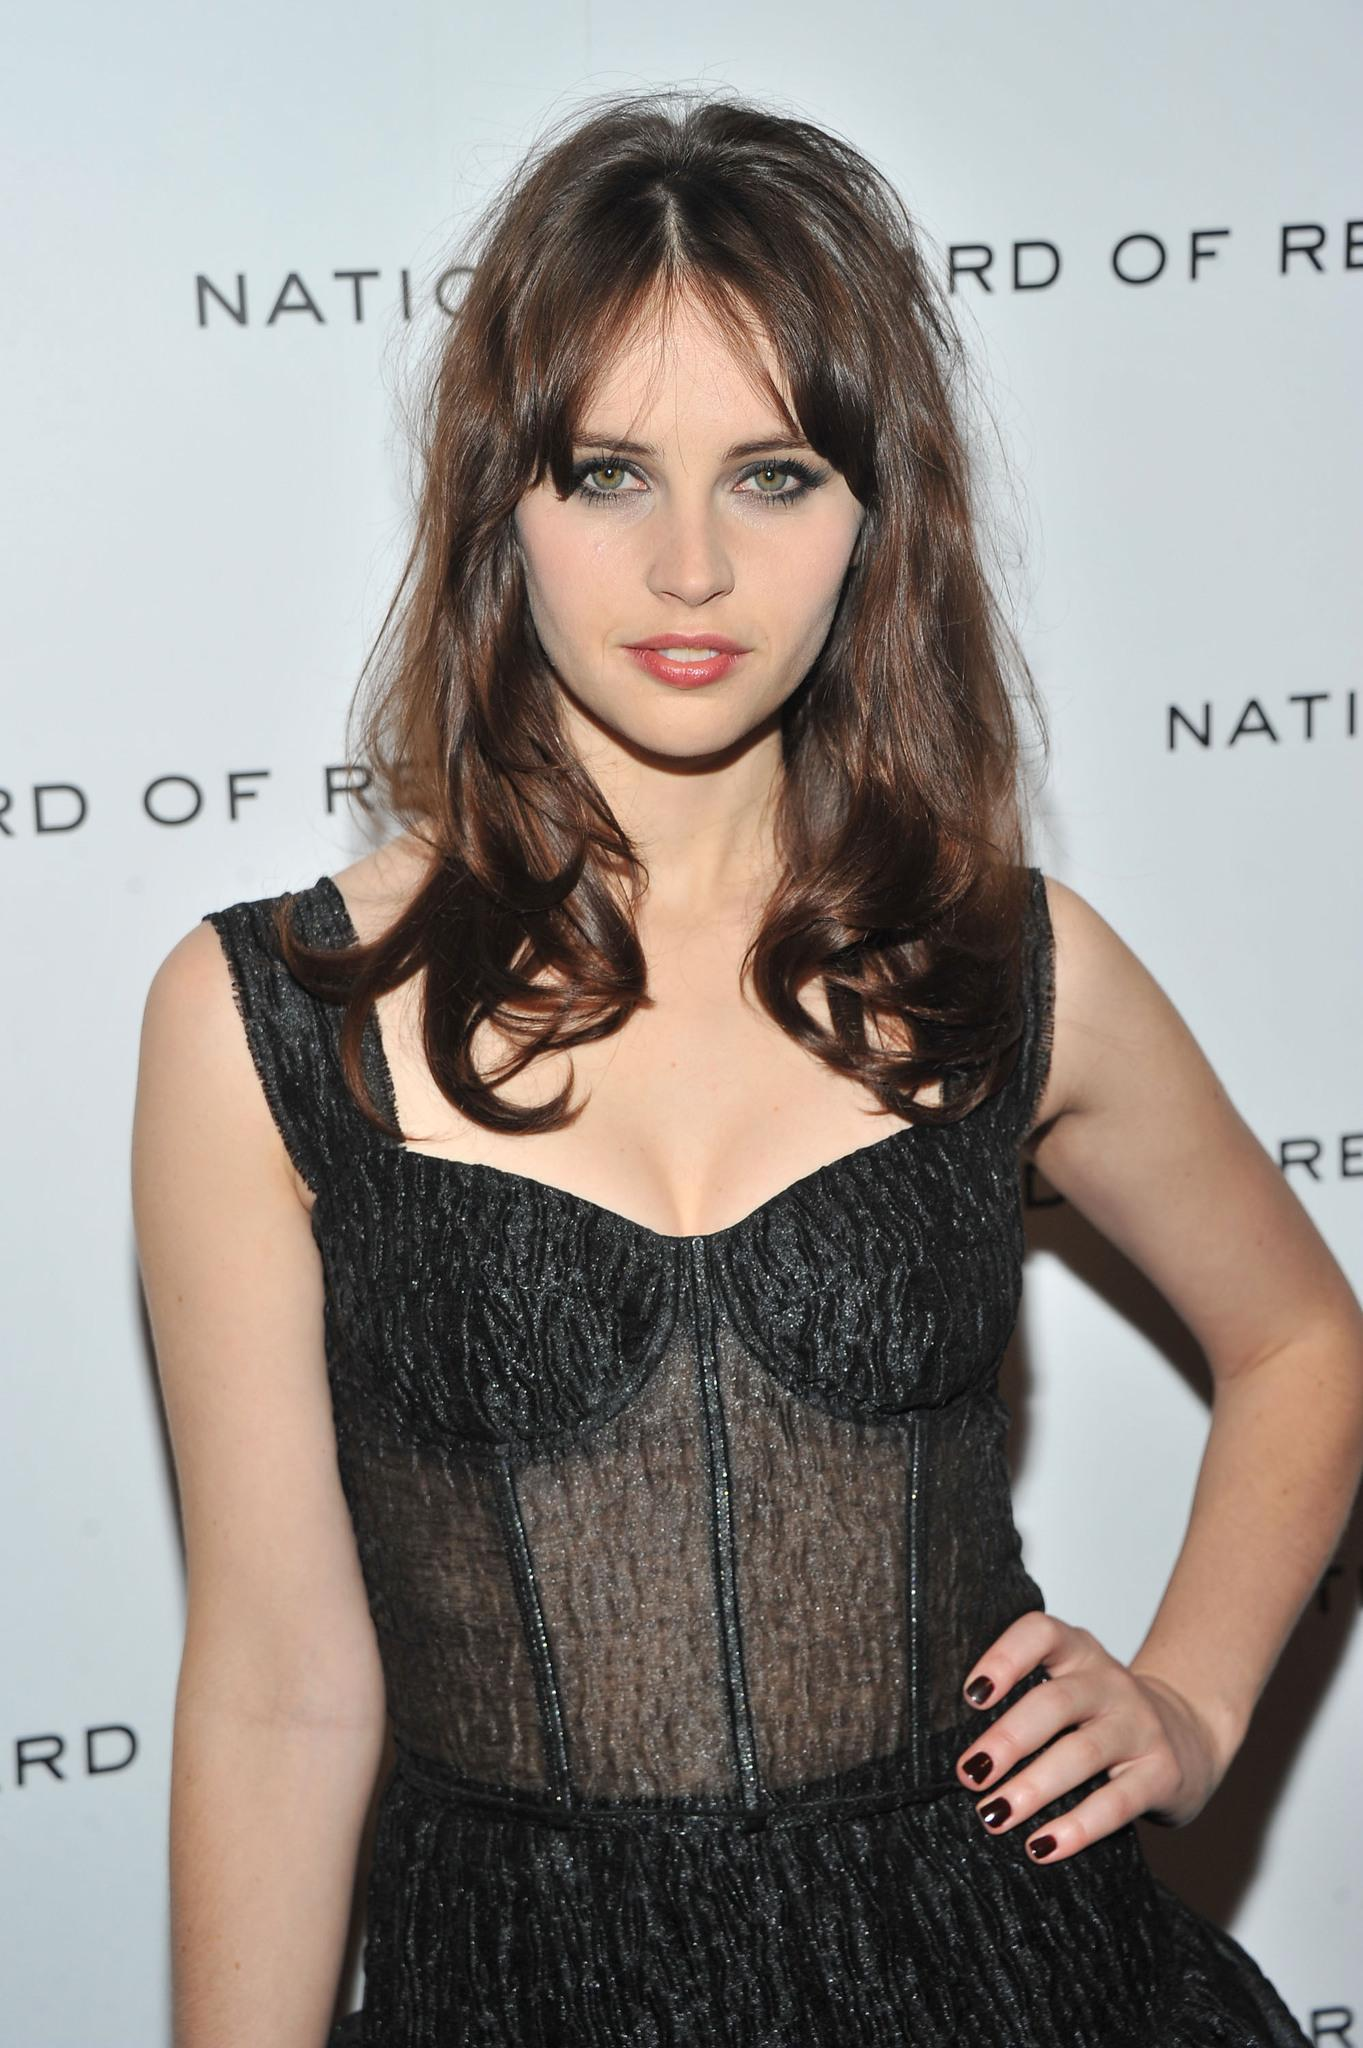 felicity-jones-showing-boobs